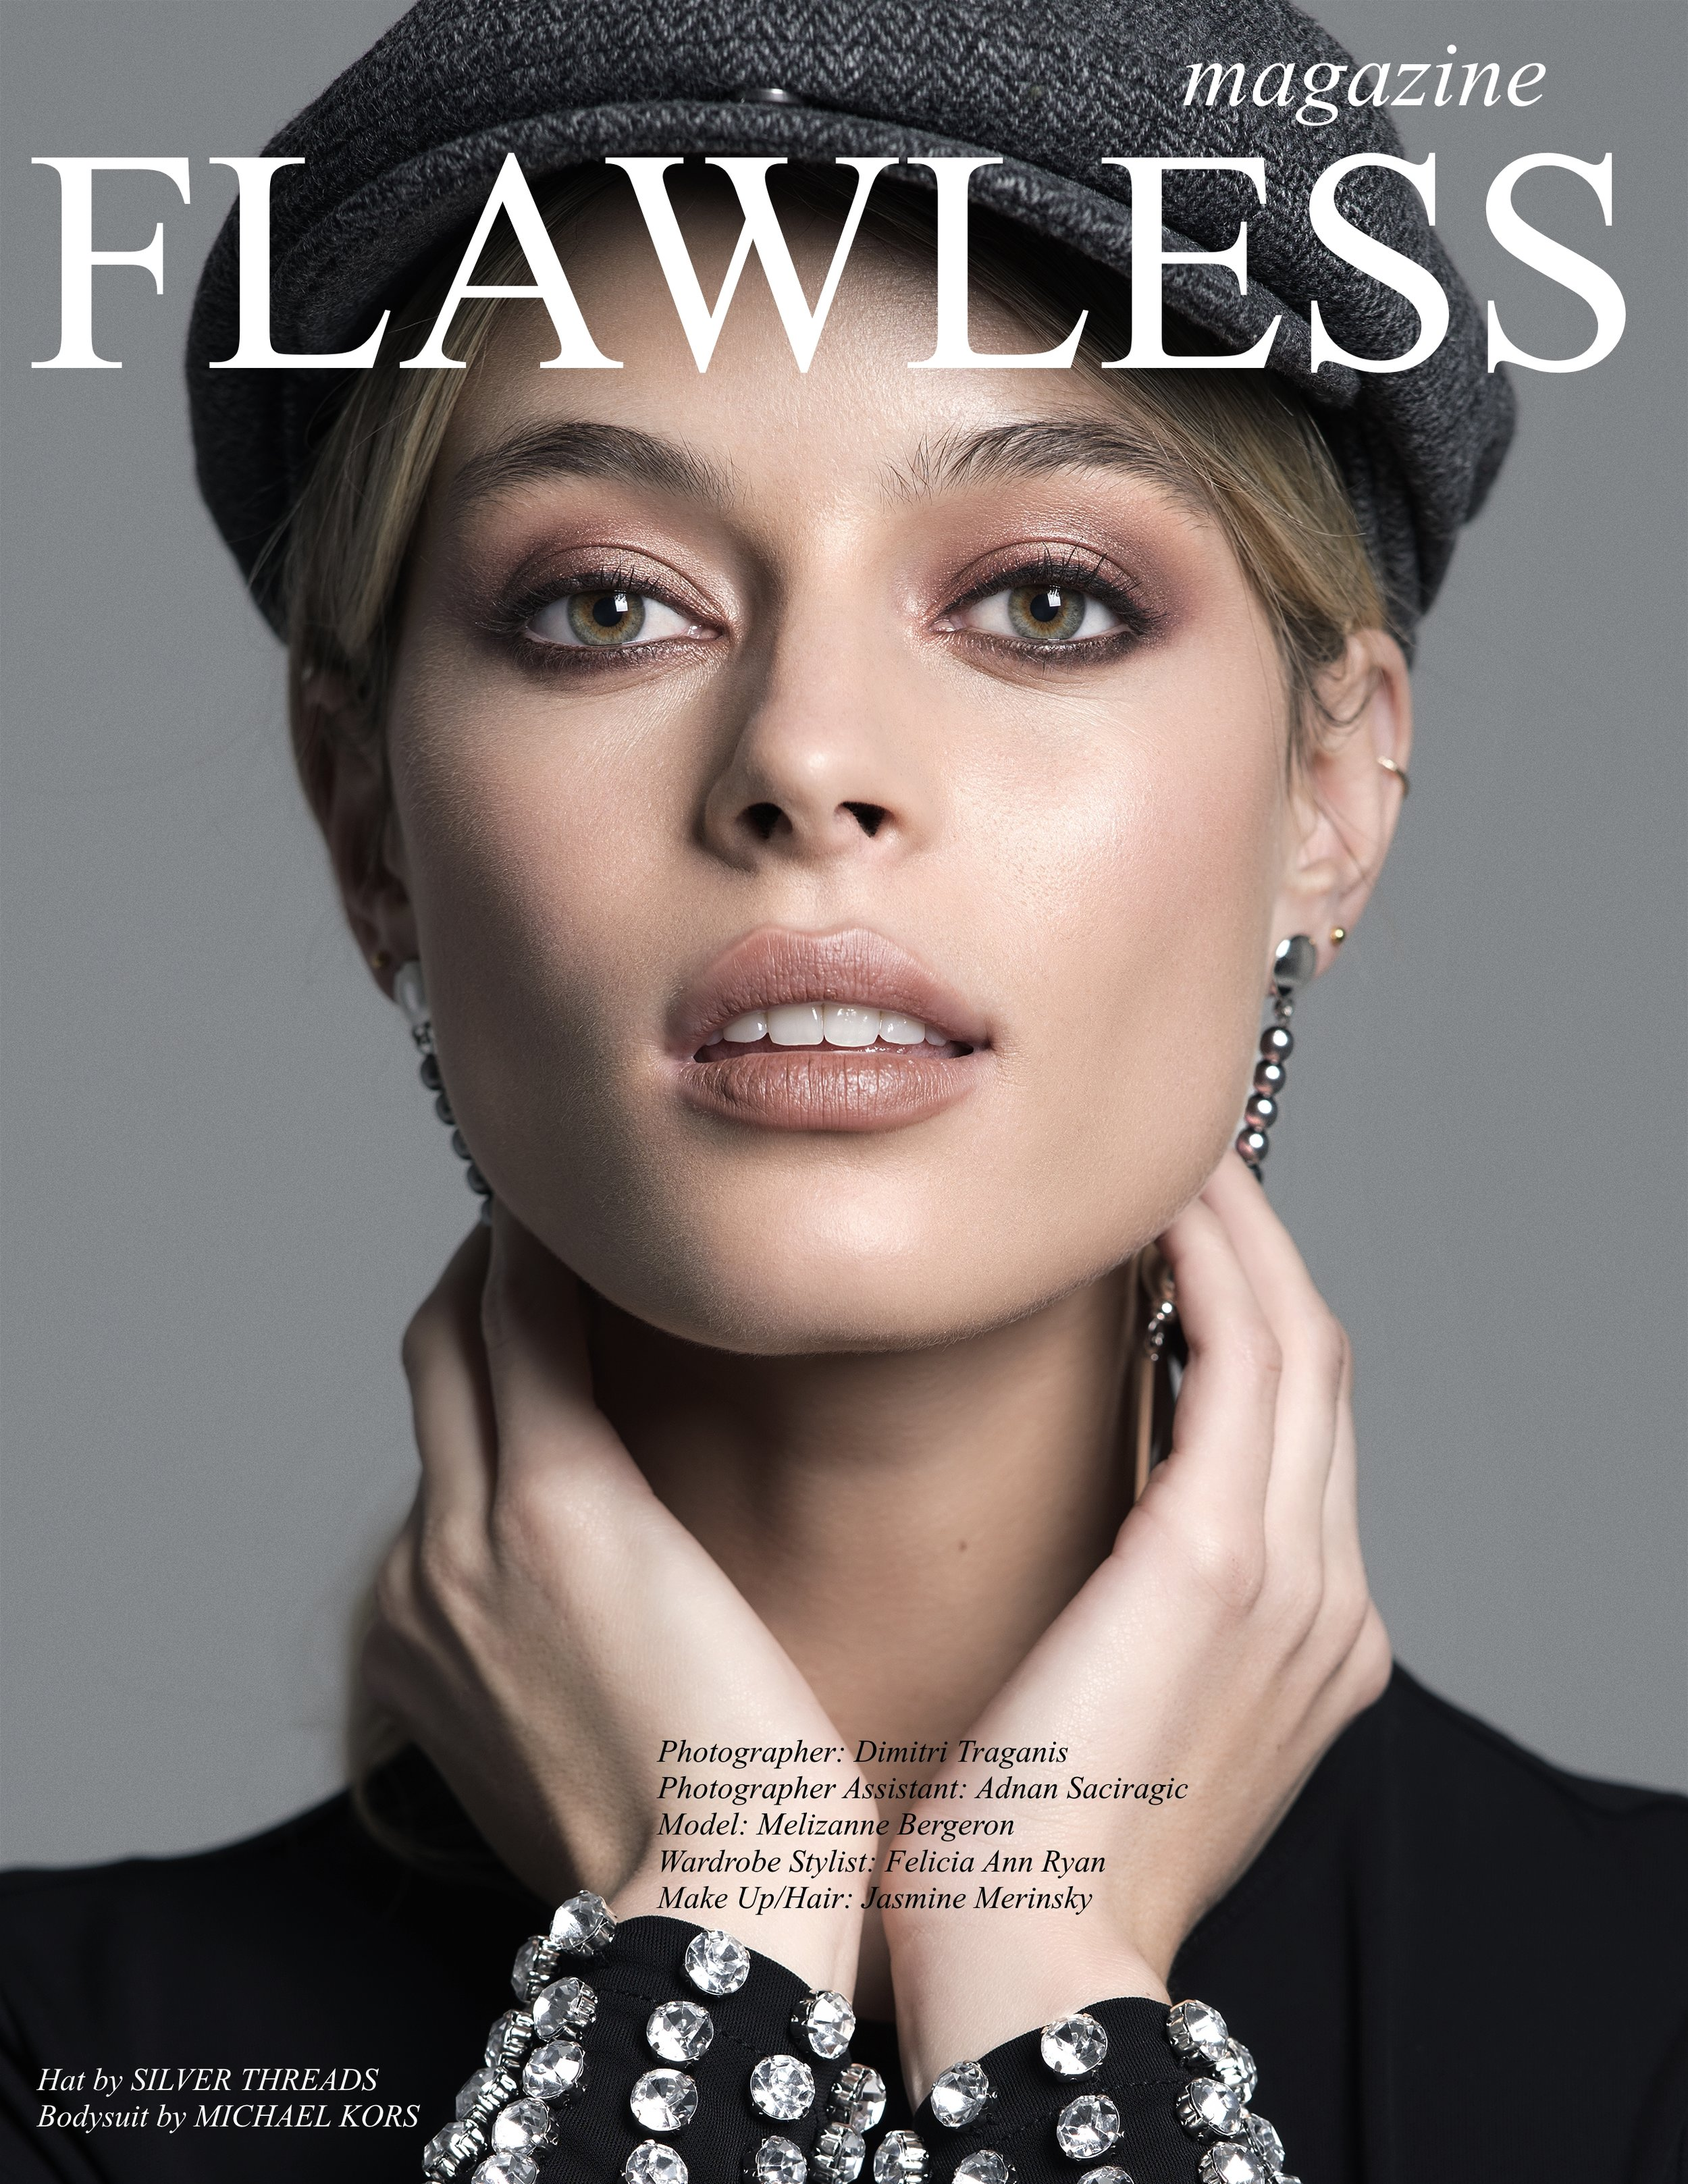 FLAWLESS-MAGAZINESUBMISSIONS-SOFT-EDGES.jpg